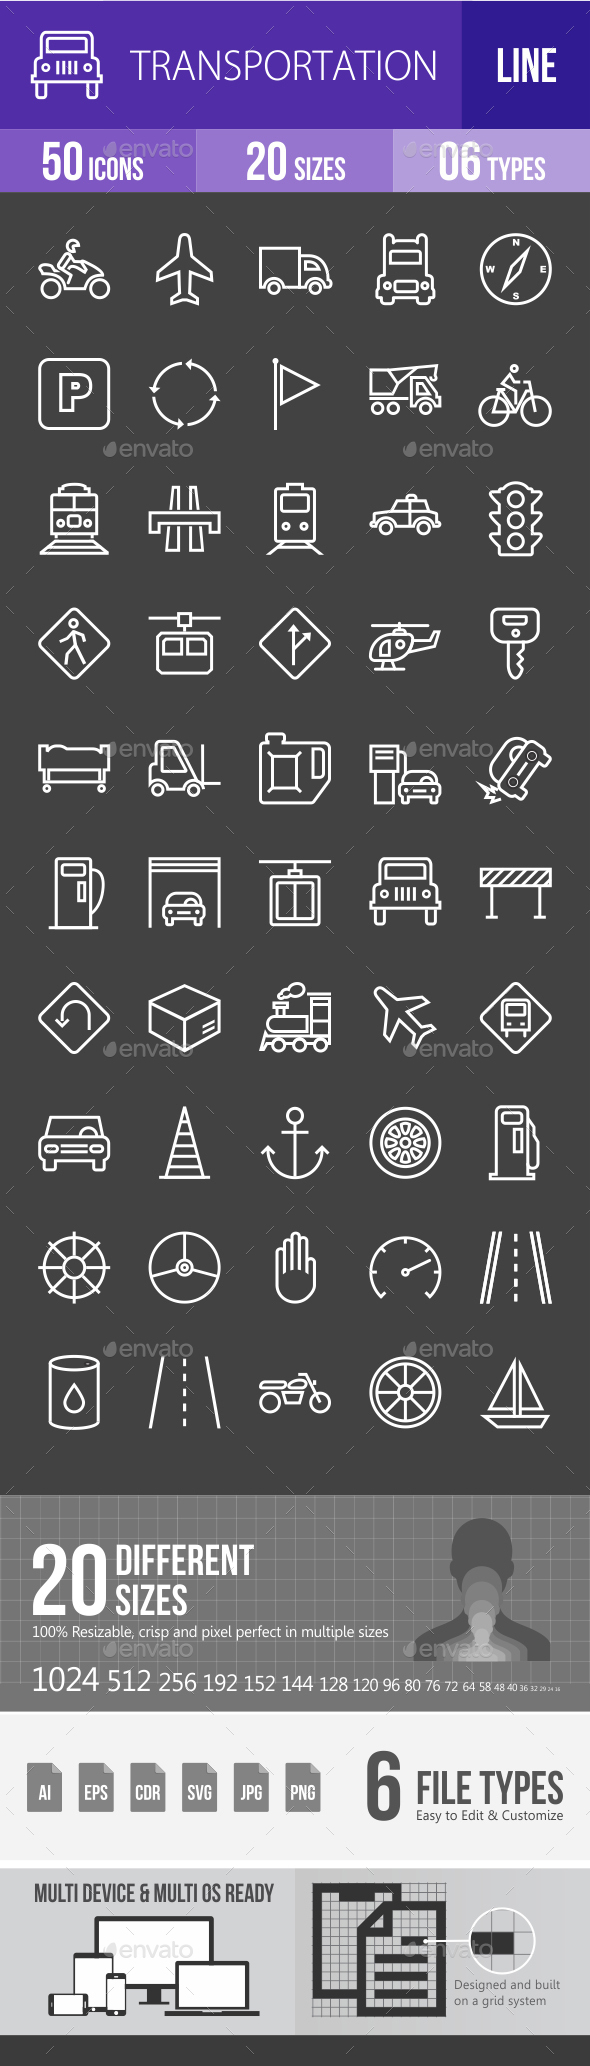 Food & Drinks Line Inverted Icons - Icons